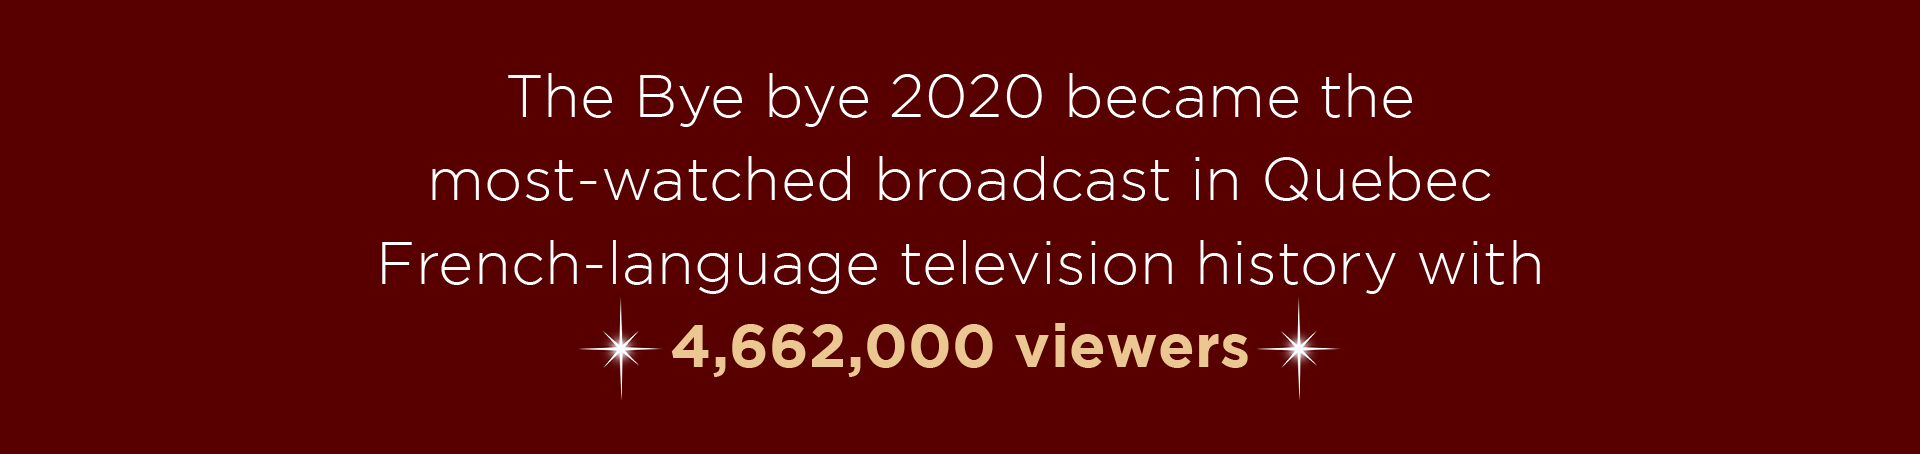 The Bye bye 2020 became the most-watched broadcast in Quebec French-language television history with 4,662,000 viewers